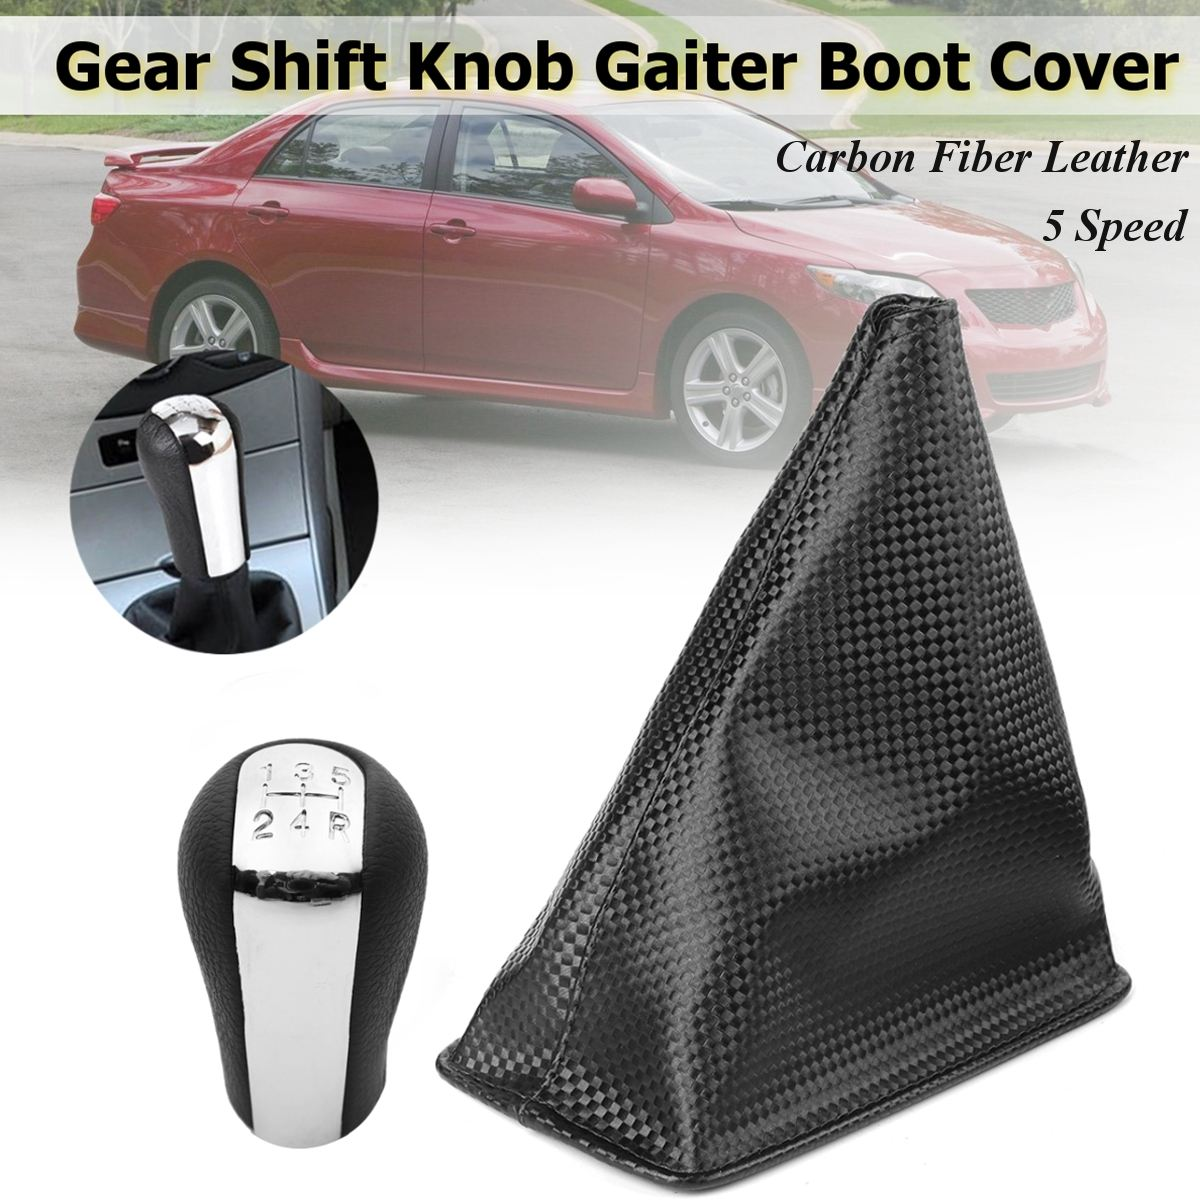 5 Speed Black Silver ABS Carbon Fiber Leather Gear Knob Gaiter Boot Cover For Toyota Corolla 1998 1999 2000 2001 2002 2003 2004